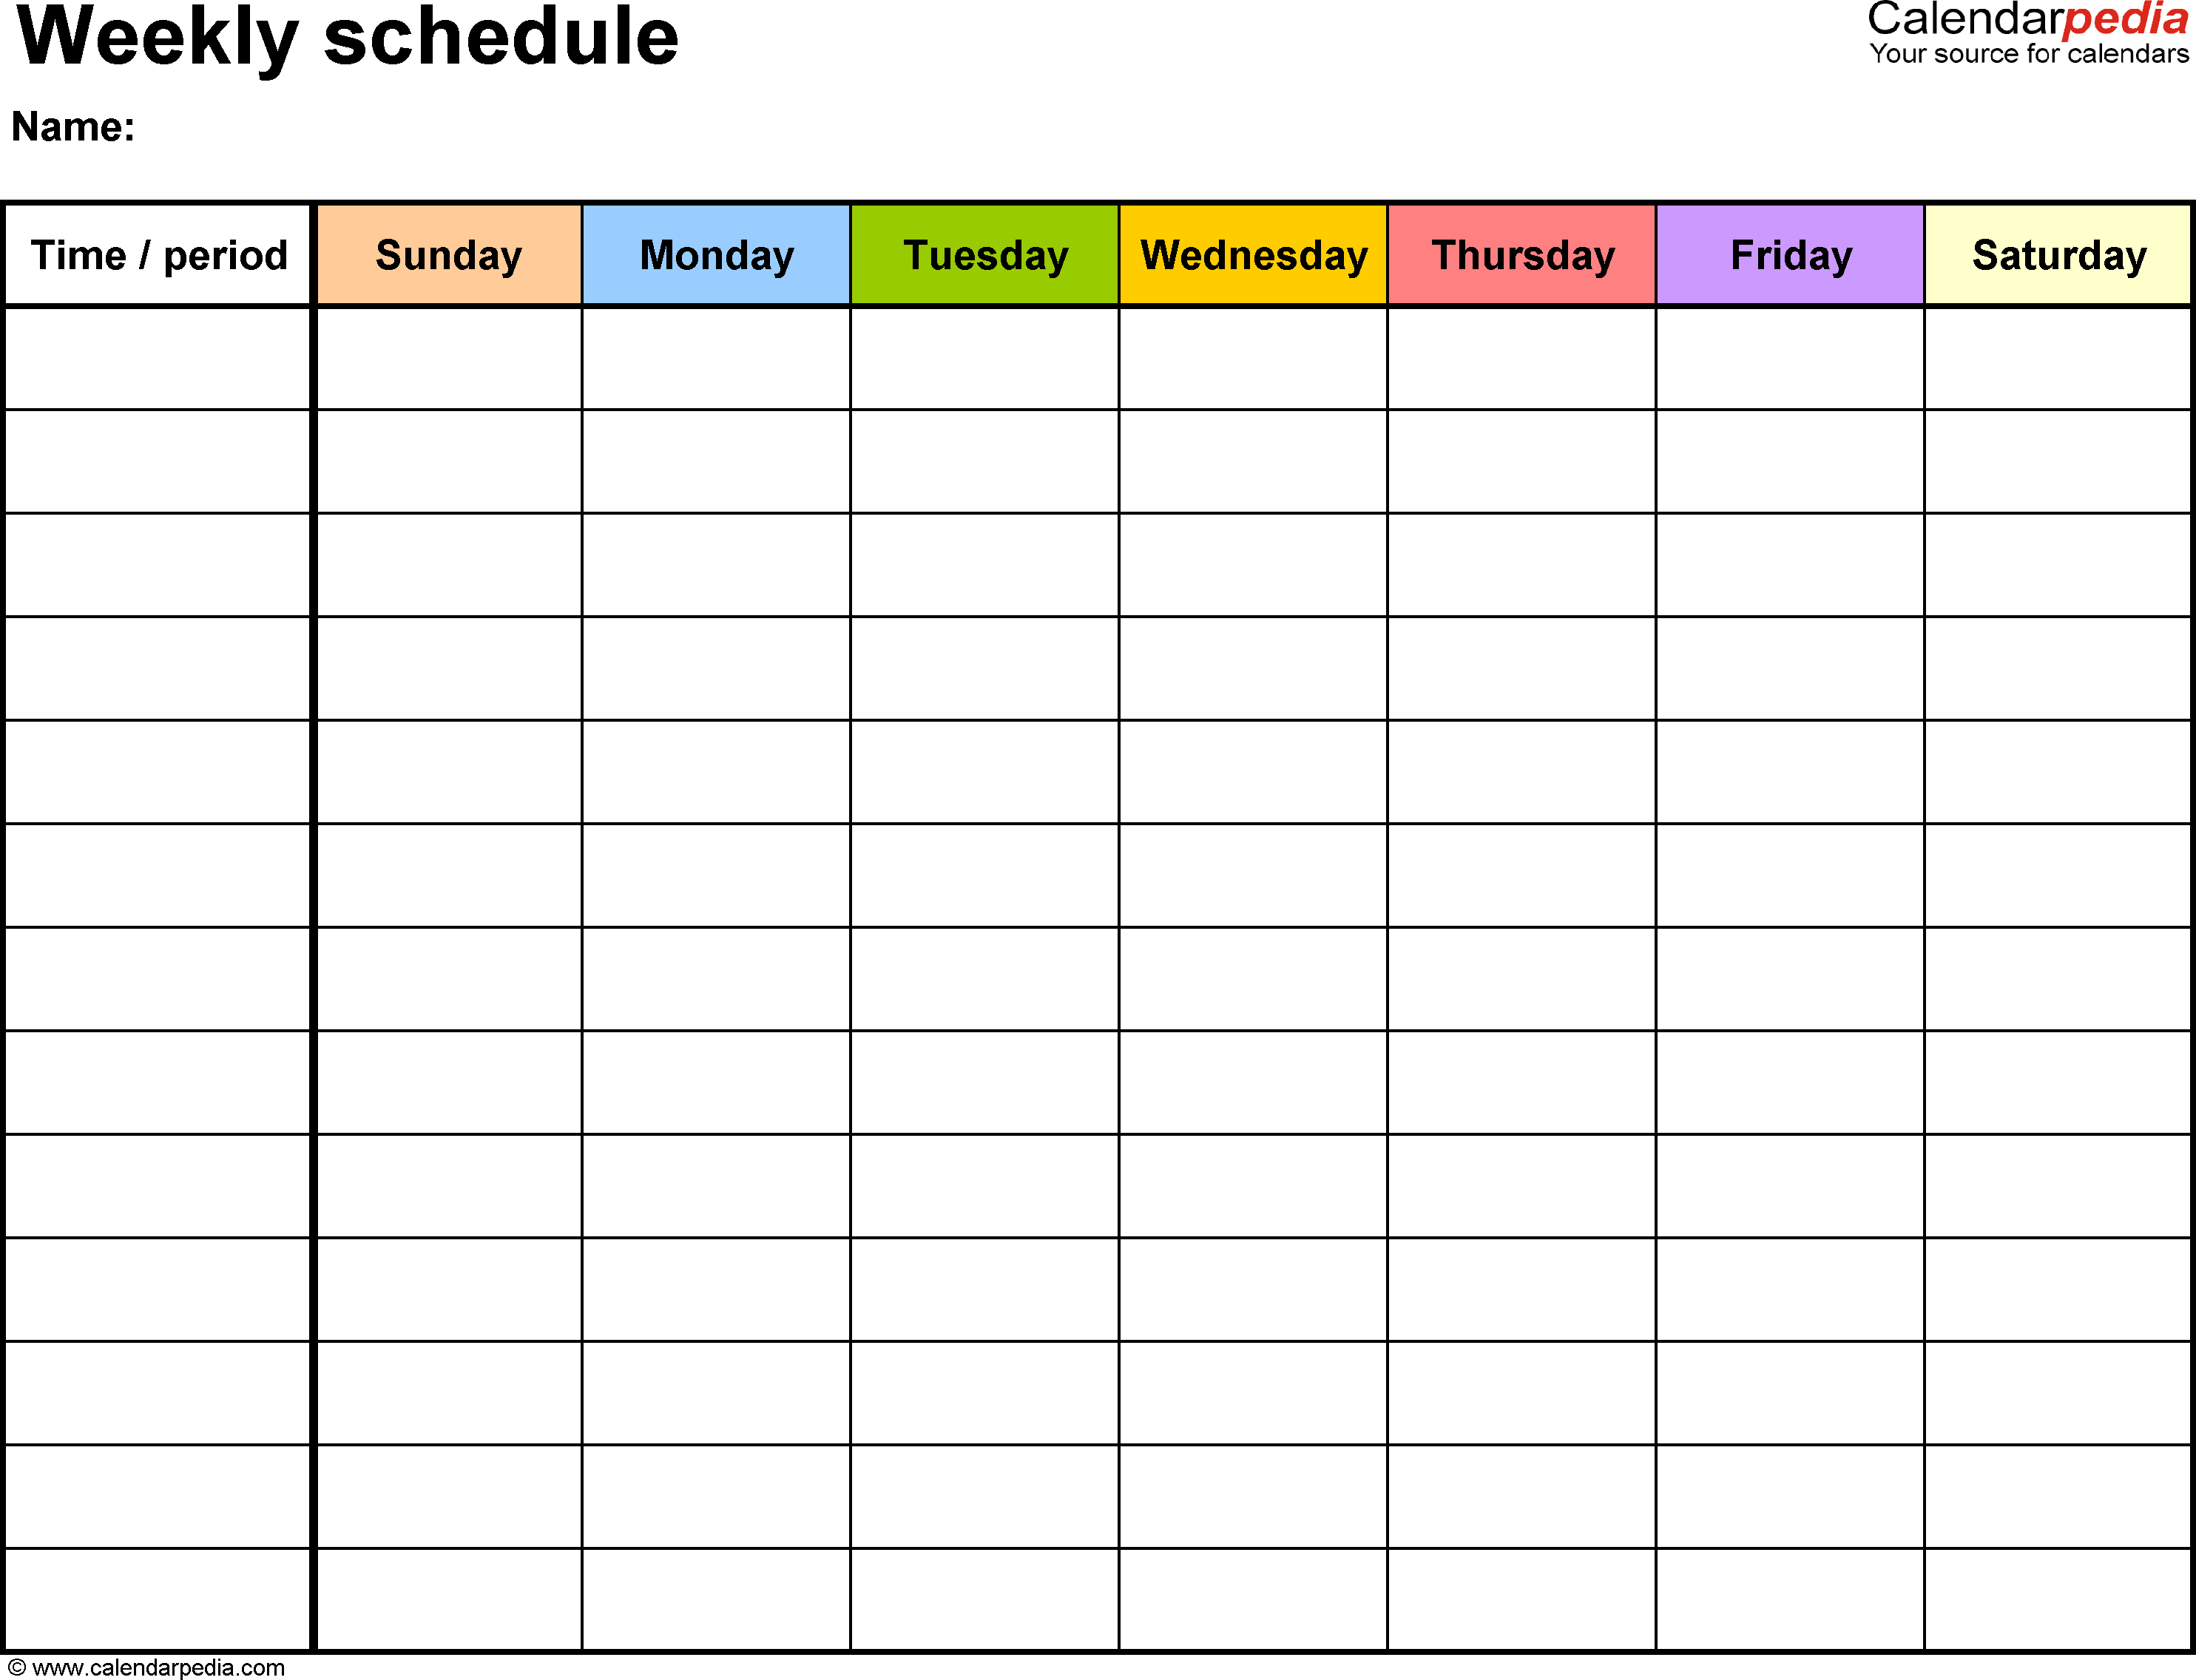 Free Weekly Schedule Templates For Excel - 18 Templates in 12 Week Blank Calendar Printable